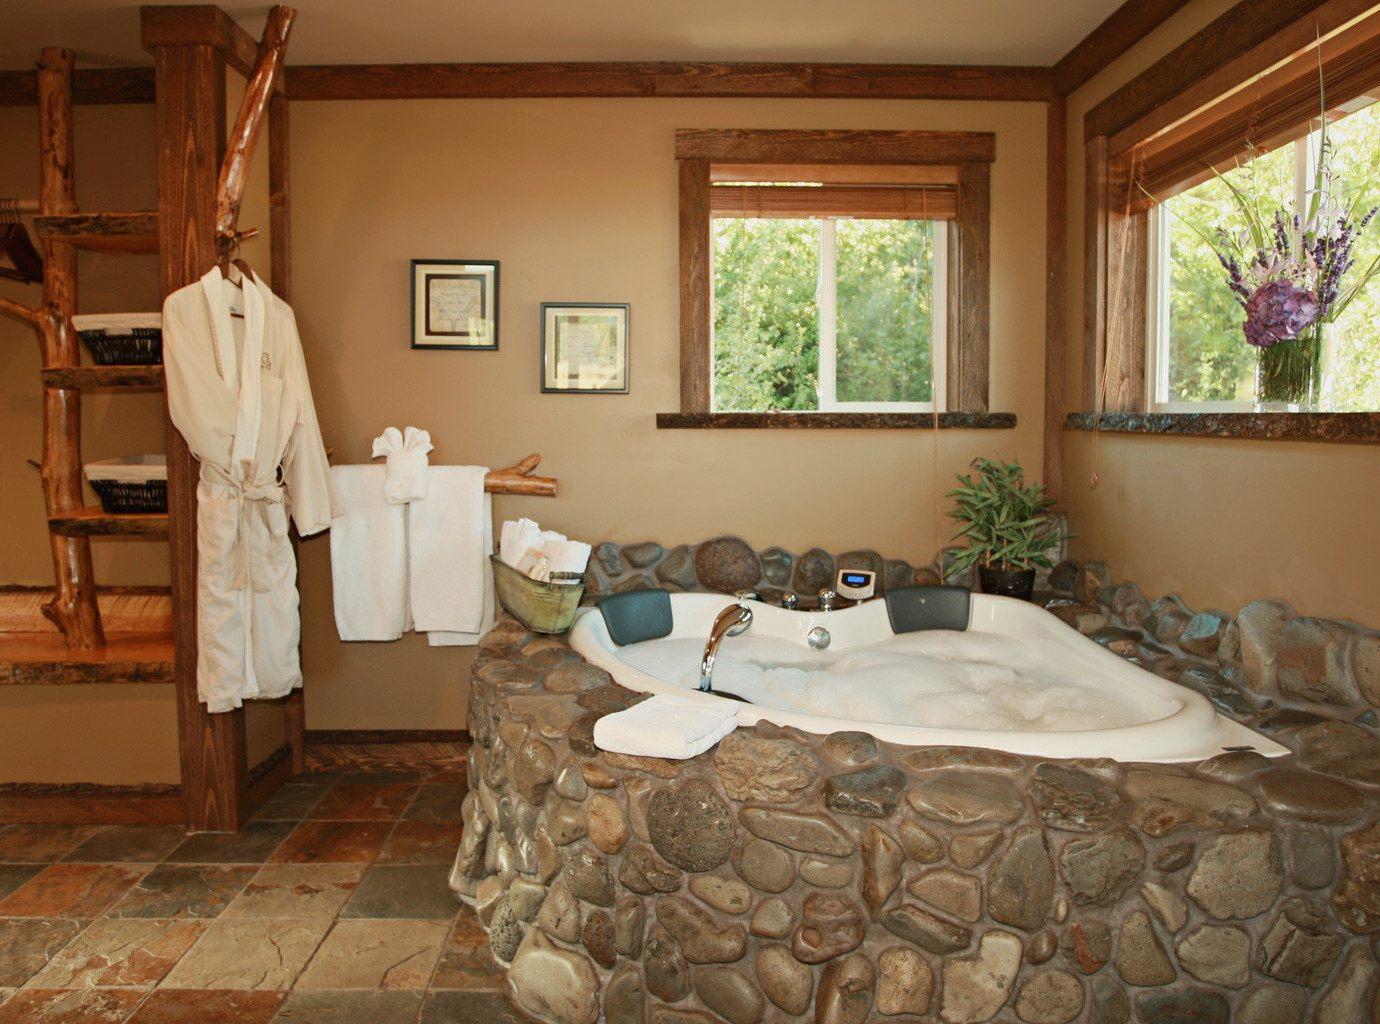 Bath Cabin Hot tub property home cottage living room farmhouse